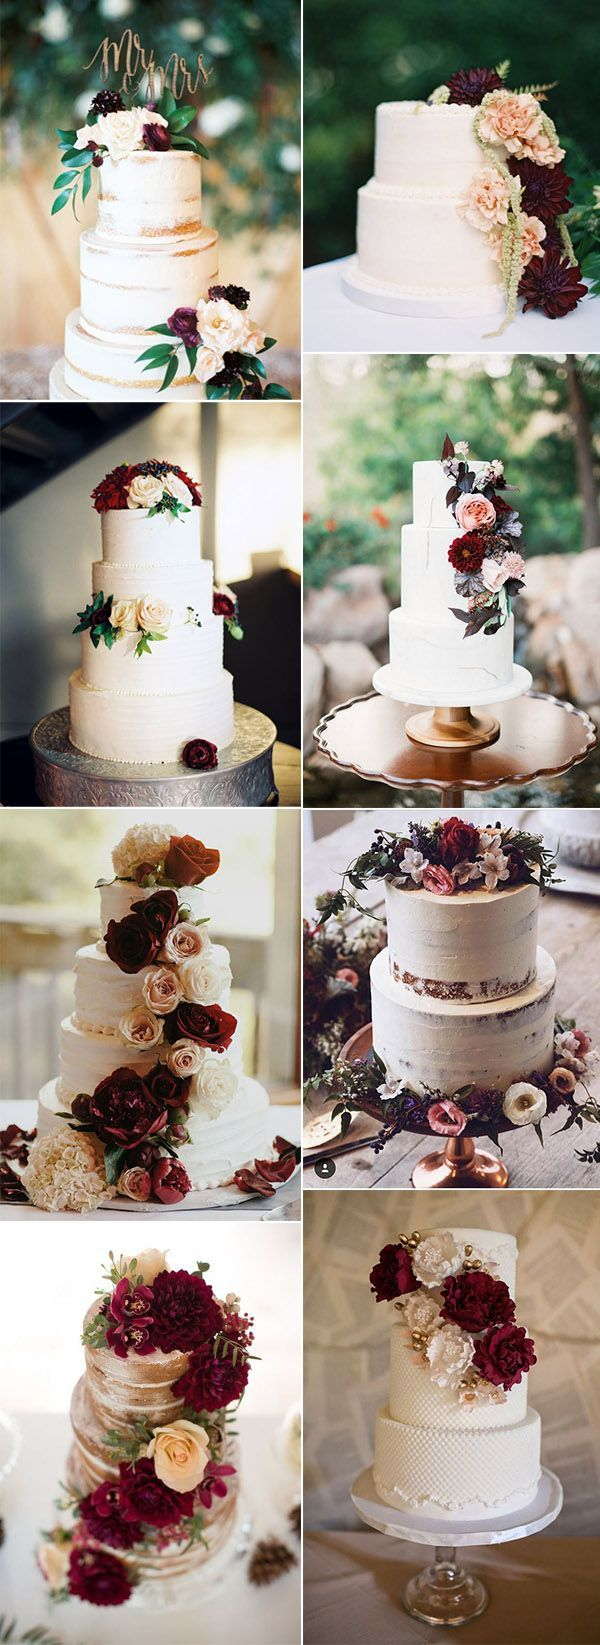 Wedding decorations themes ideas october 2018  Refined Burgundy and Marsala Wedding Color Ideas for Fall Brides